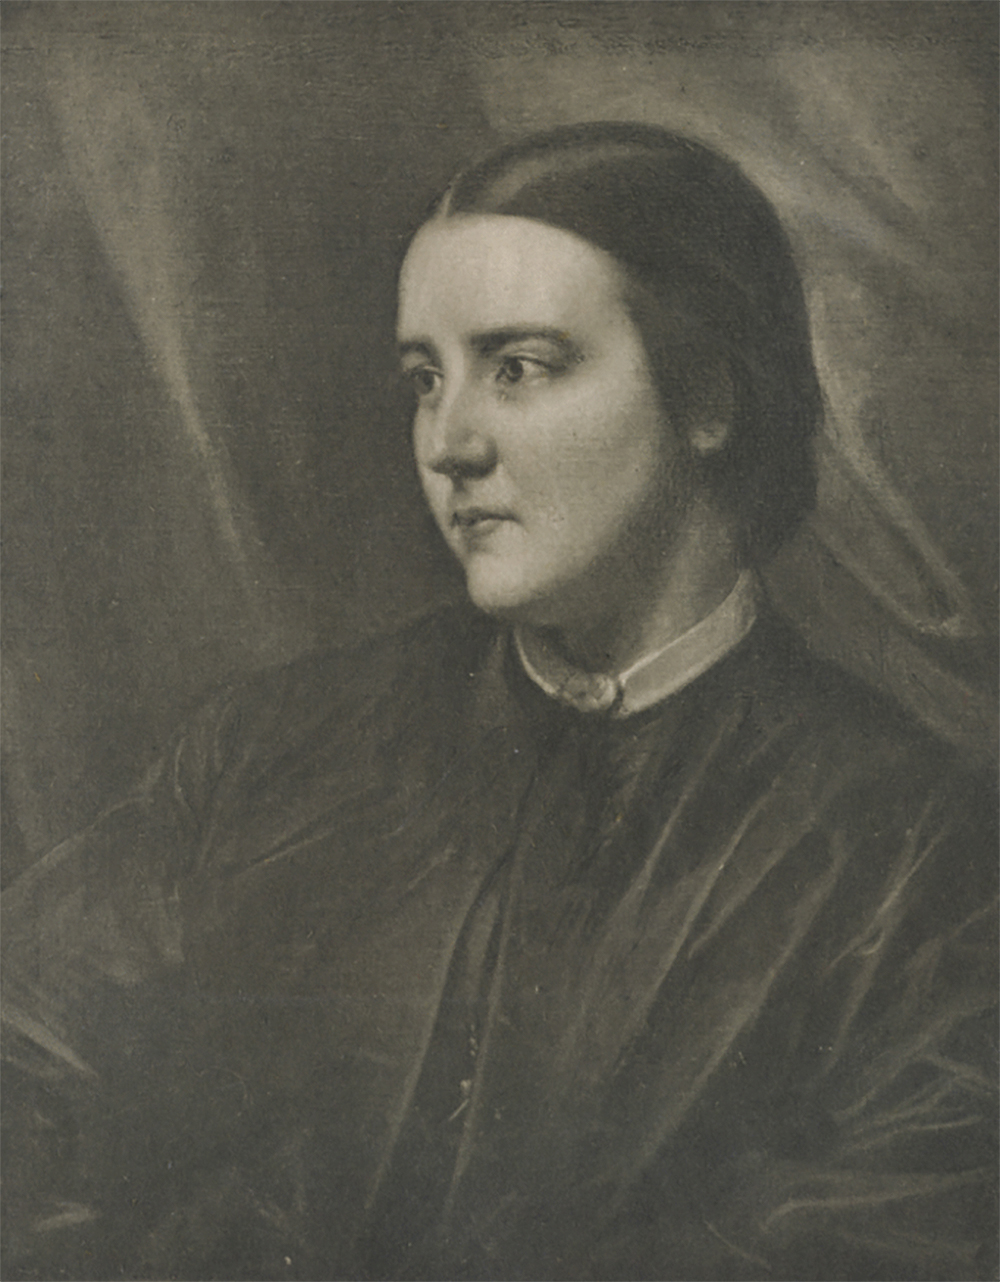 Dr. Jex-Blake's hair is parted down the middle and pulled back on both sides. She looks to the right with her mouth closed, unsmiling, her expression communicating determination and personal clarity. Sophia Jex-Blake, age twenty-five, by Samuel Laurence, 1865. Wikimedia Commons.